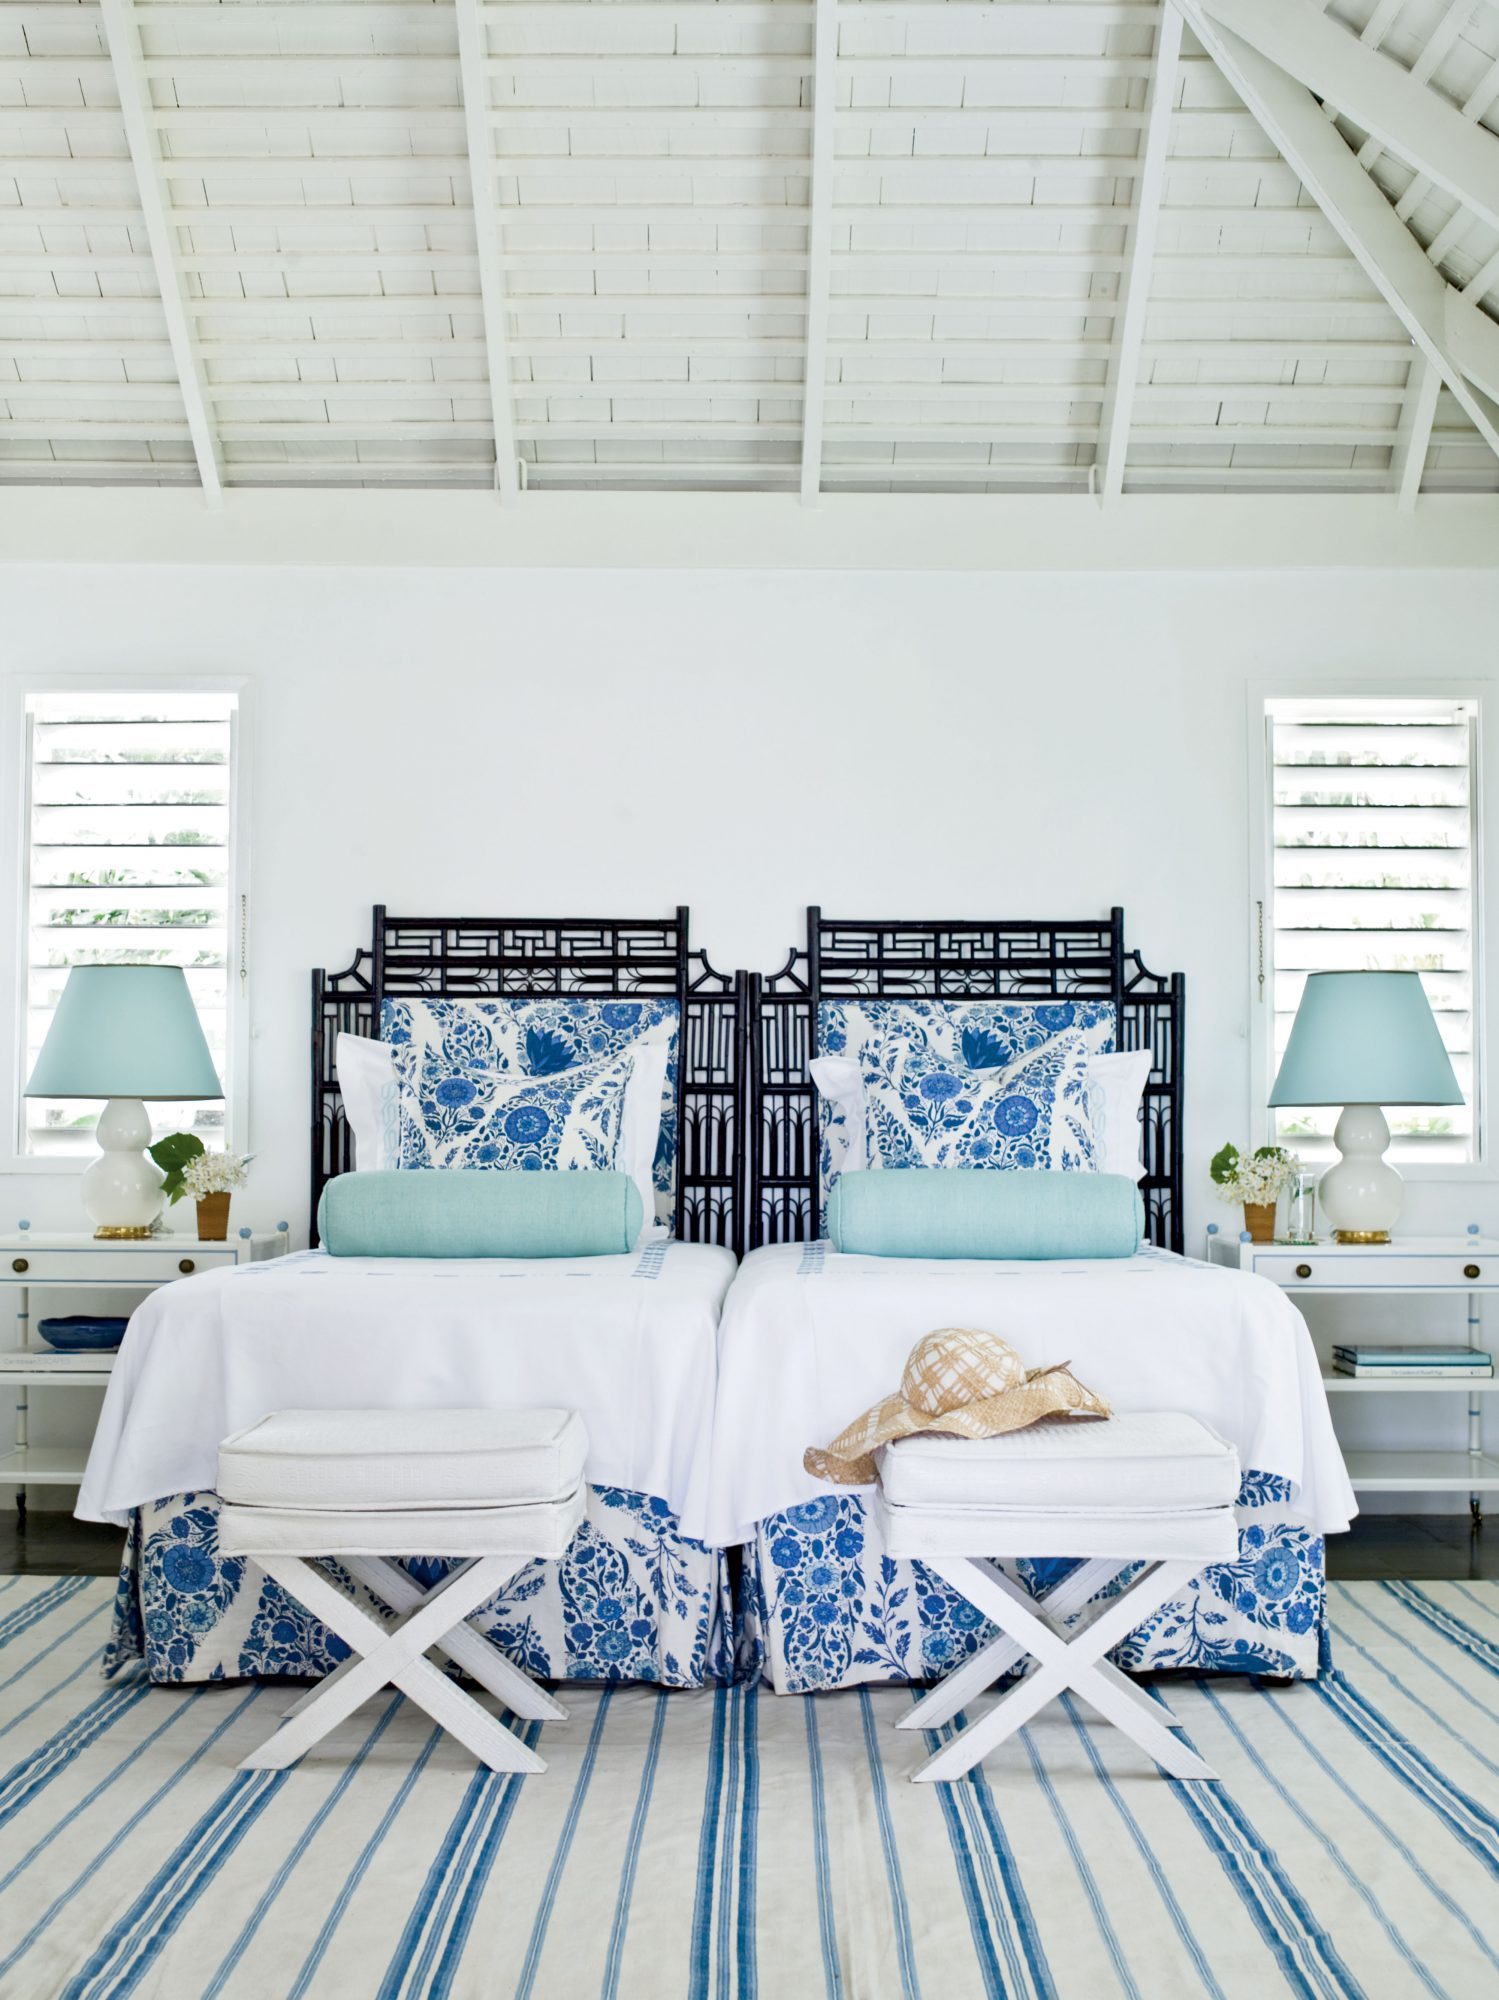 Re-create the effortless beauty of the islands by mixing variations of blues and pops of prints throughout a room.